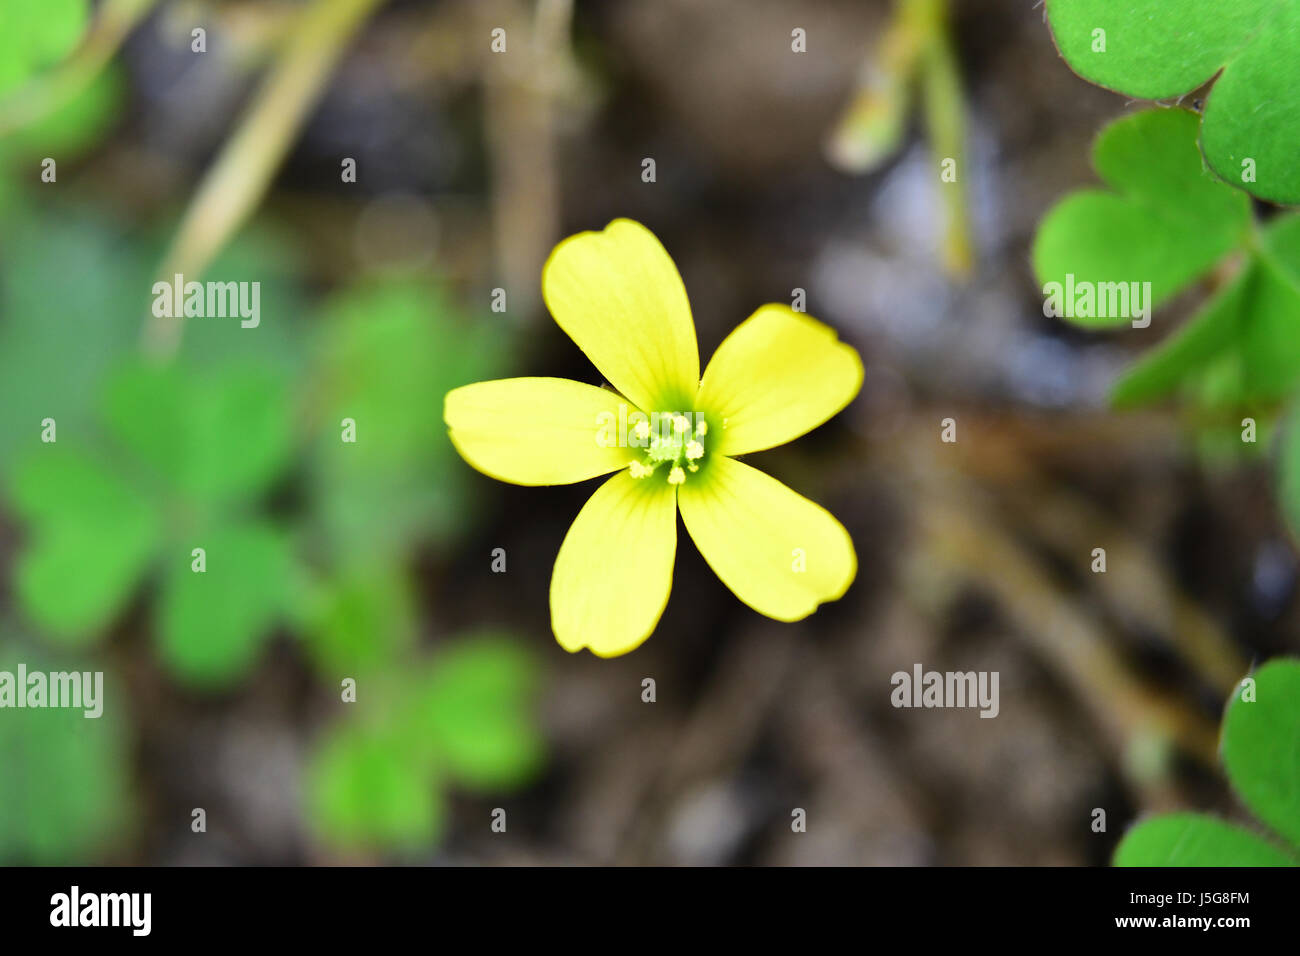 Close up of little yellow flower with blurred clover leaves stock close up of little yellow flower with blurred clover leaves background mightylinksfo Choice Image